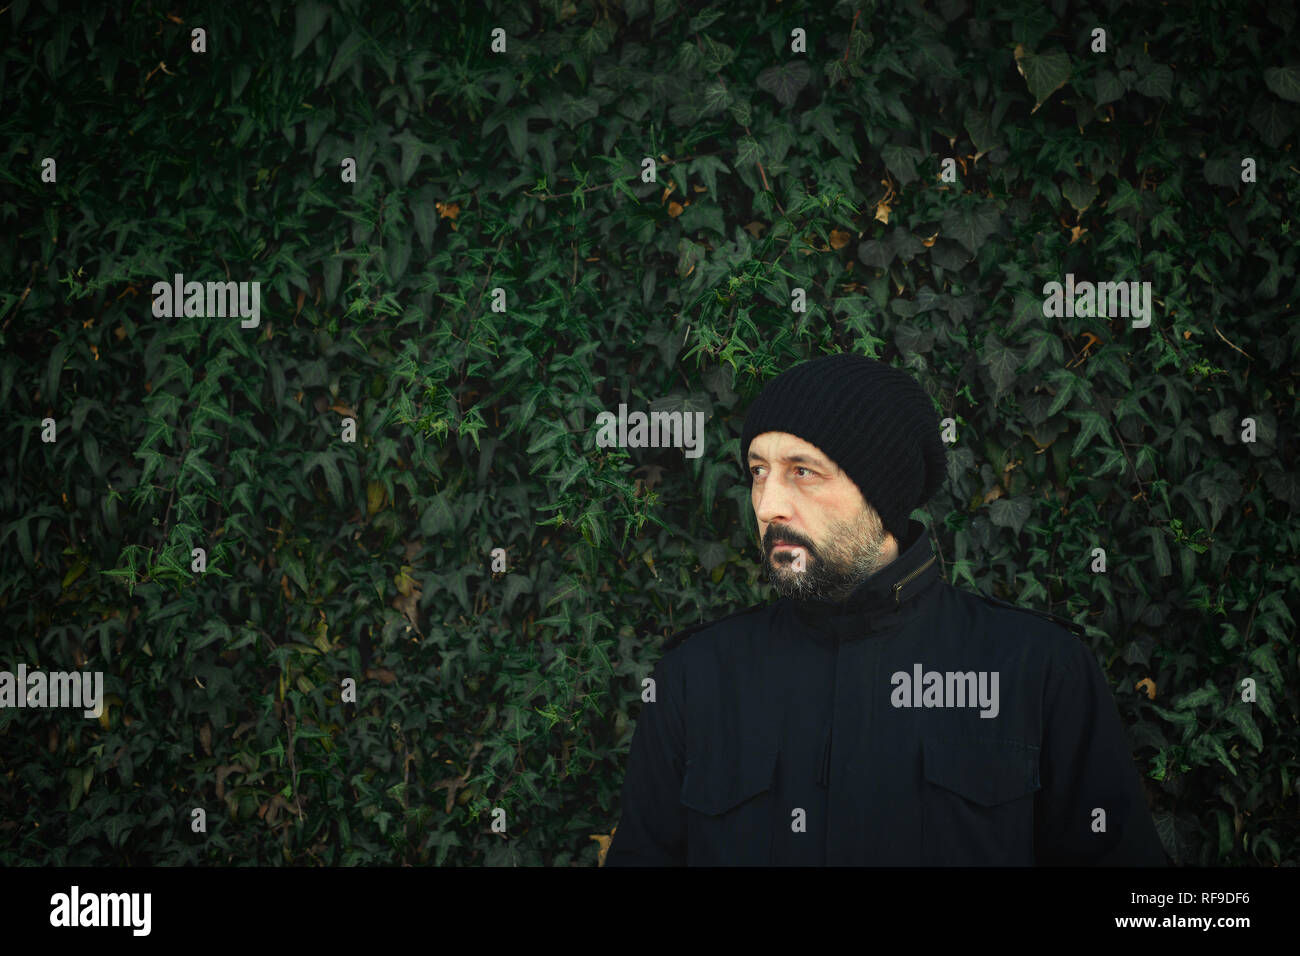 Portrait of cool handsome guy in military jacket standing outdoors against  the common ivy wall in 21c6e9c3ed30